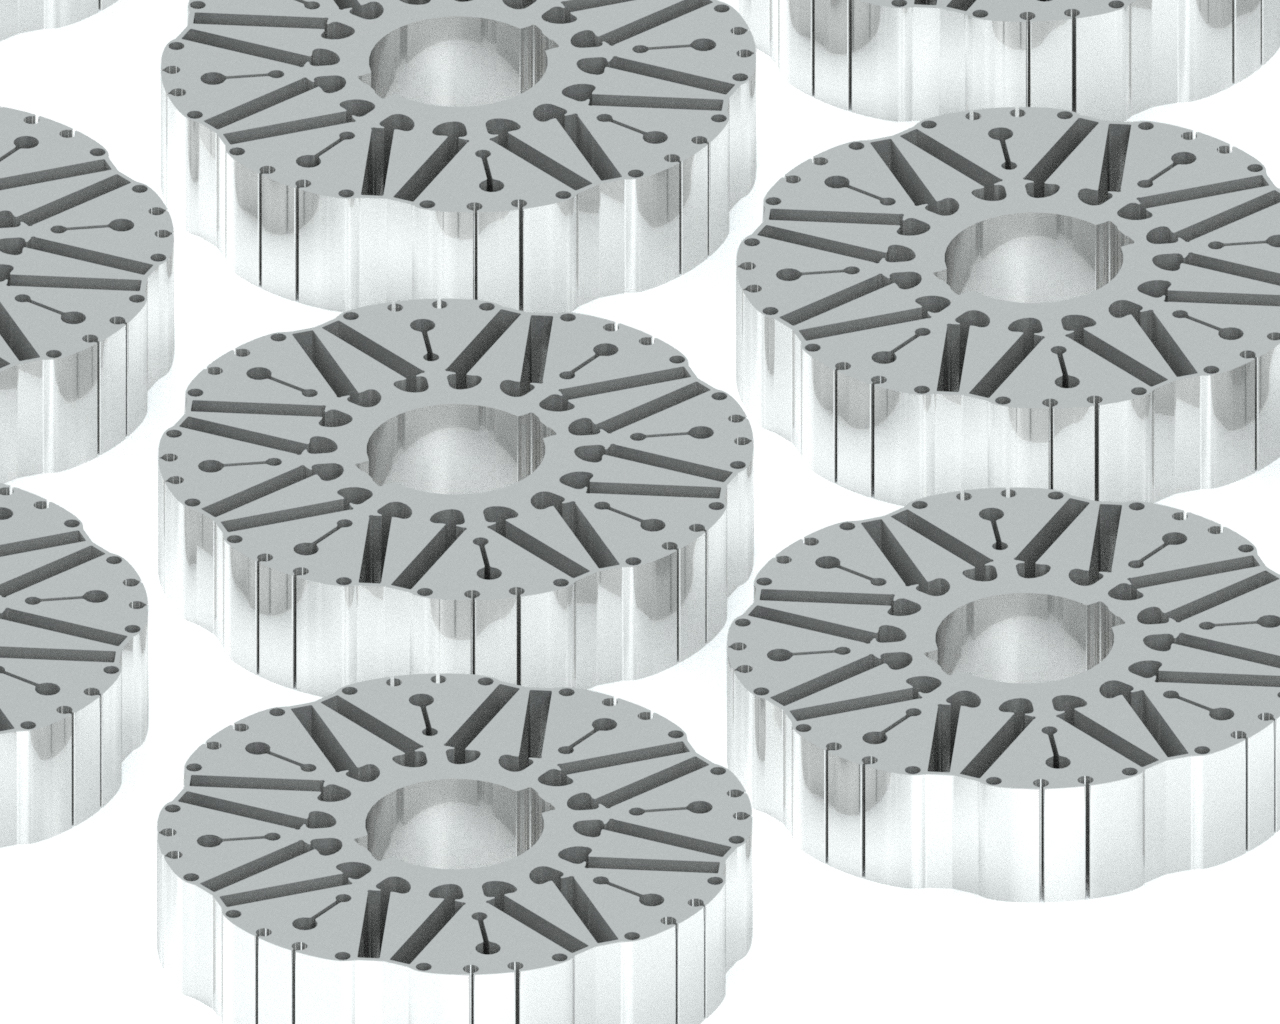 Nestech laminations stack up for the aftermarket